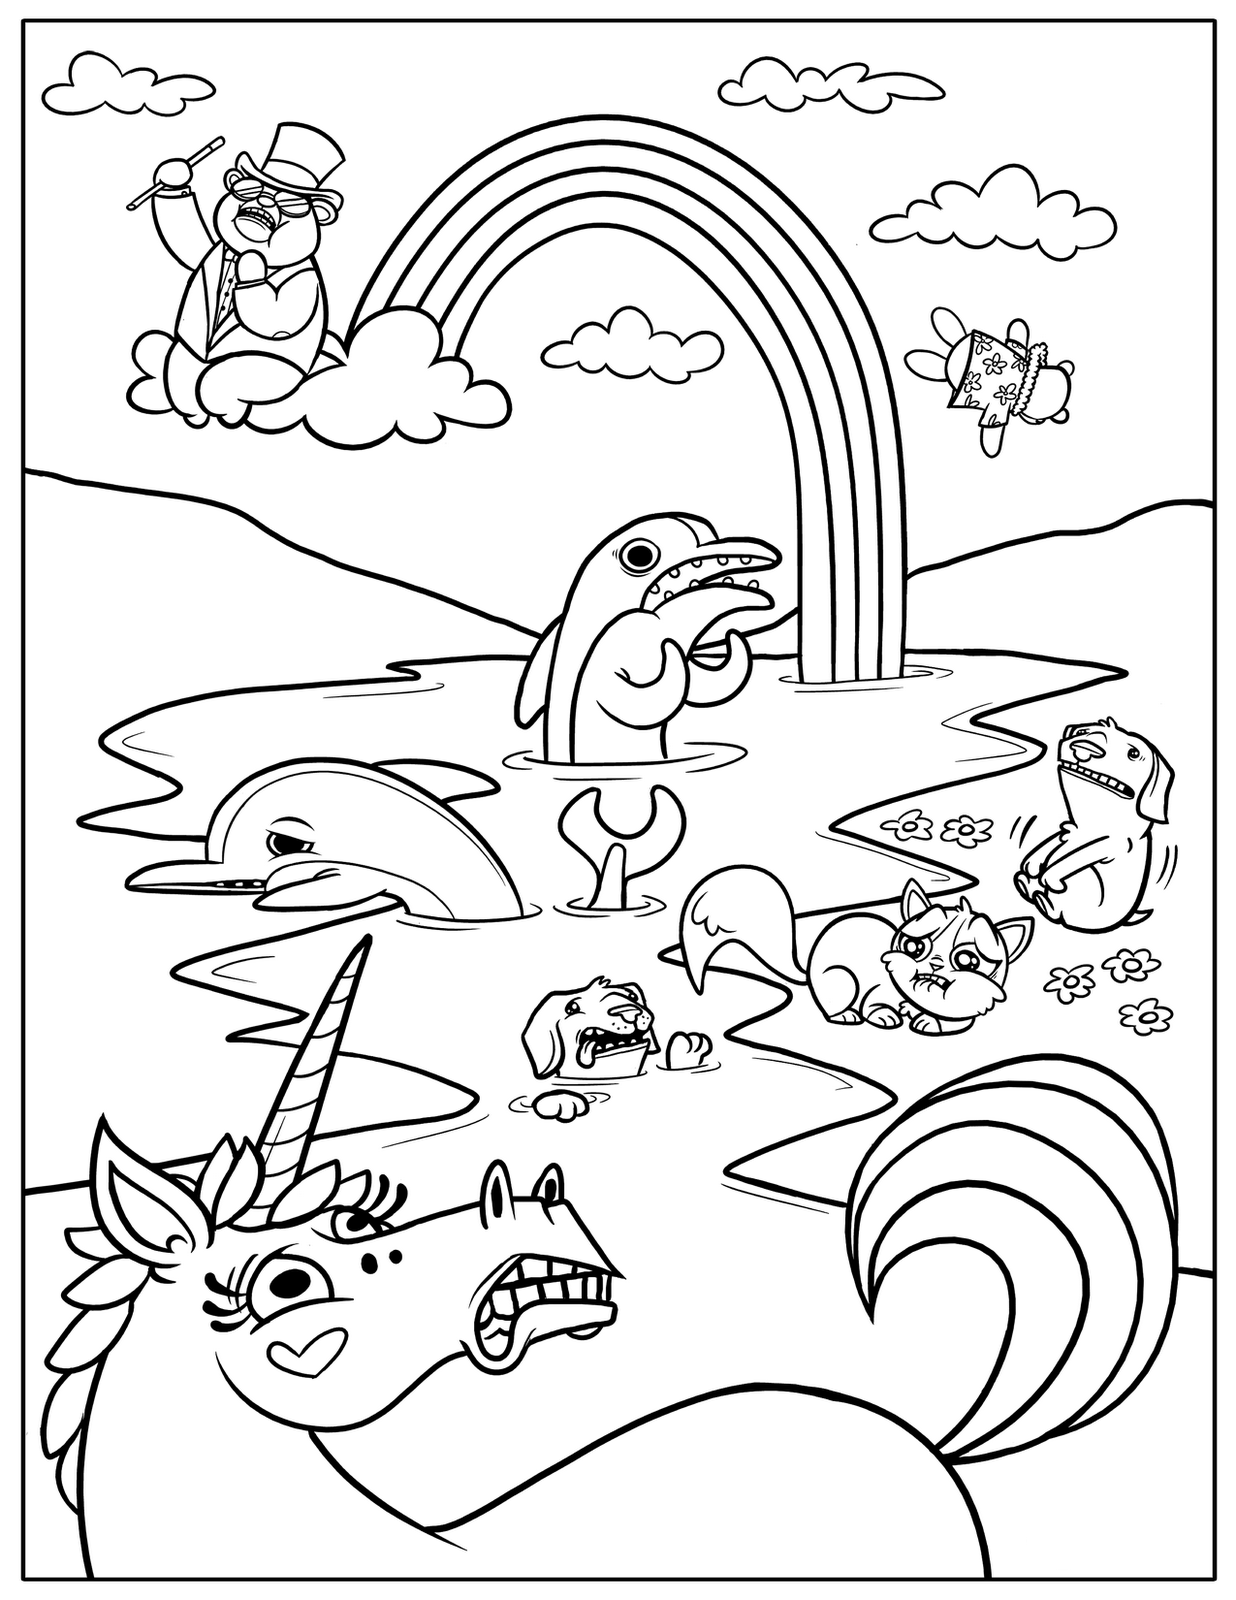 cool kids coloring pages fun and free easter colouring pages for kids to enjoy kids pages coloring cool